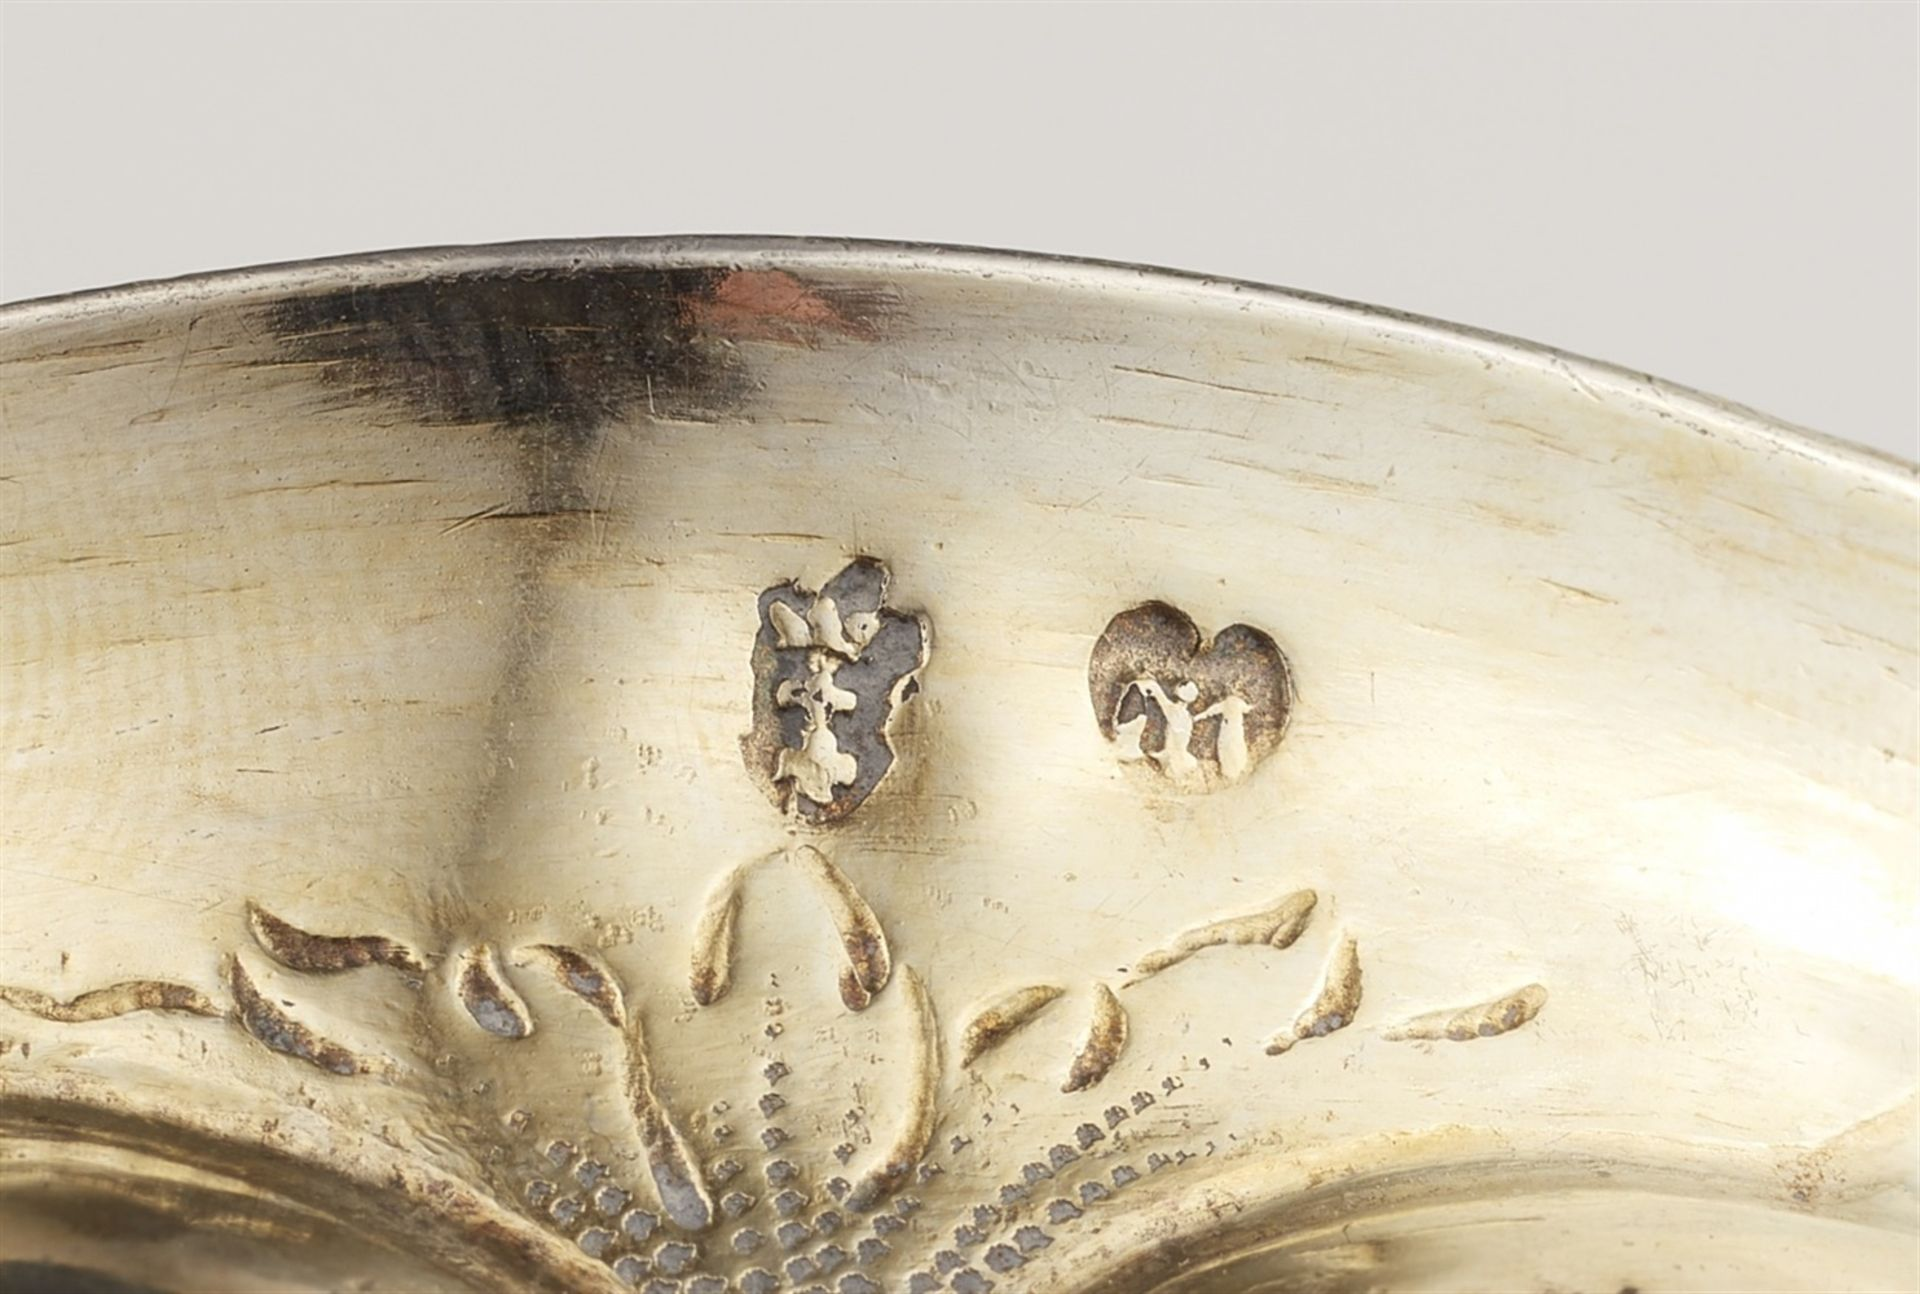 Los 717 - A Gdansk silver columbine chaliceSilver; gold-plated. Silver-gilt goblet with a round gadrooned base